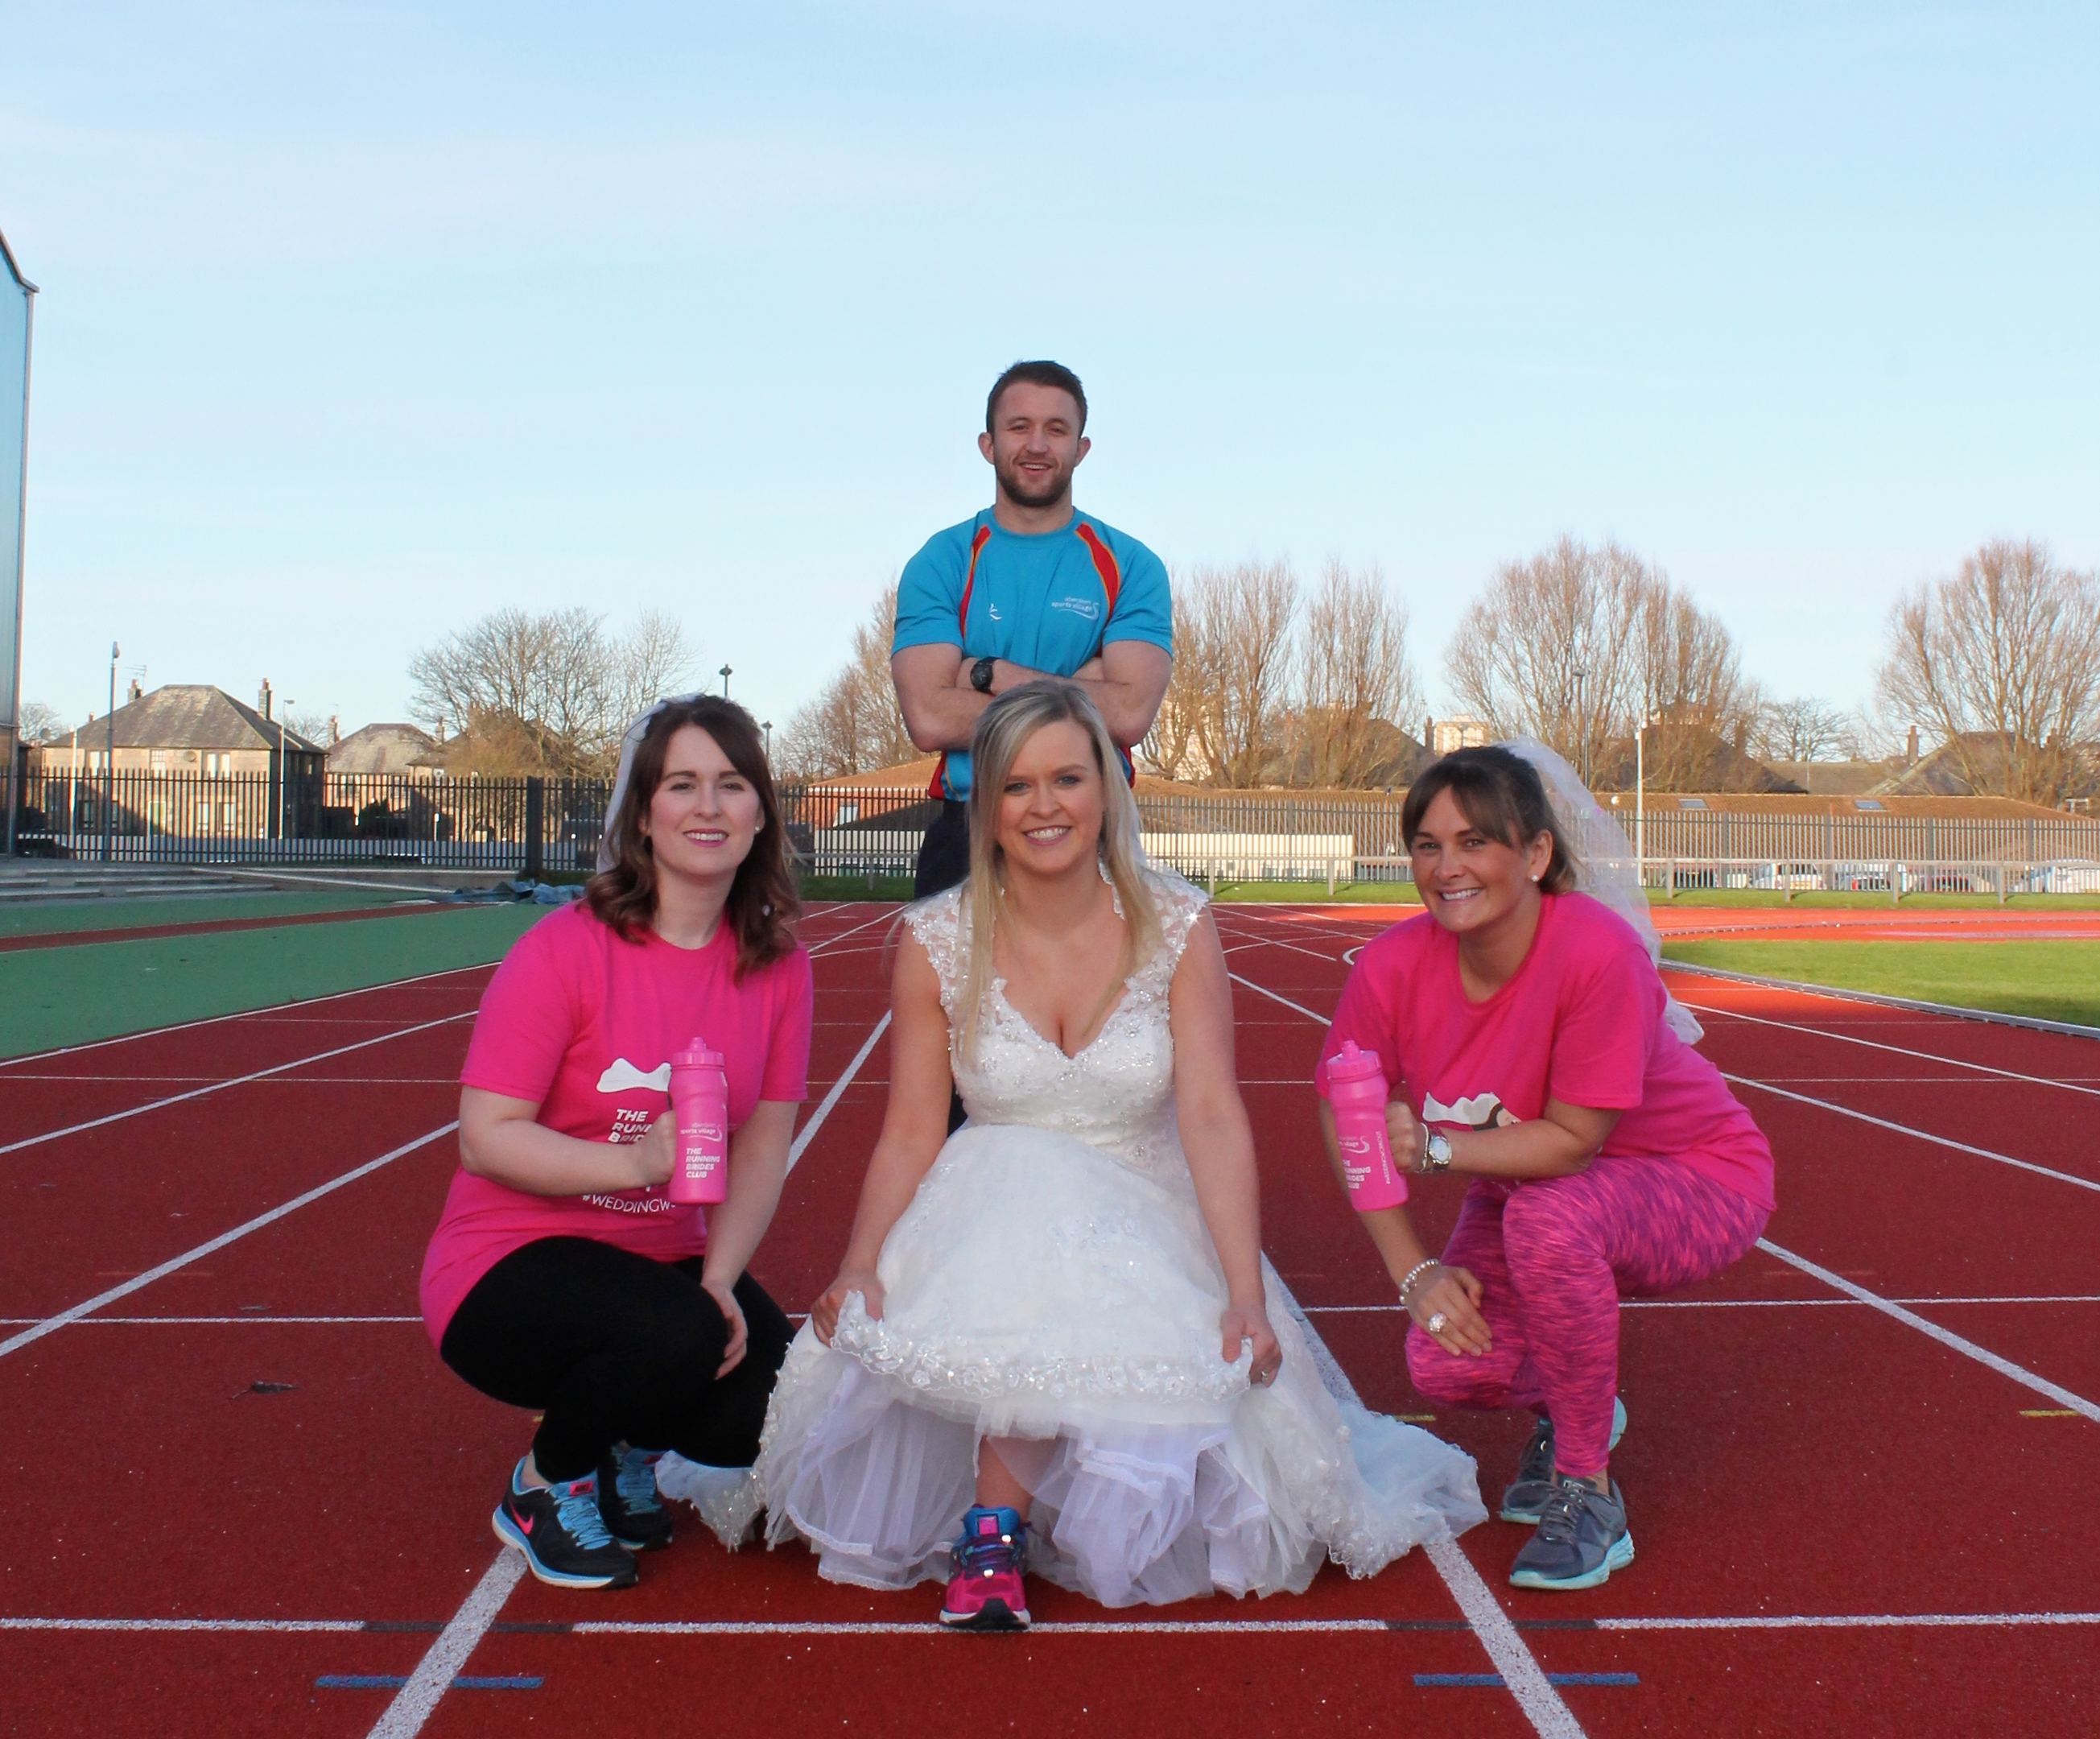 The launch of the running brides club